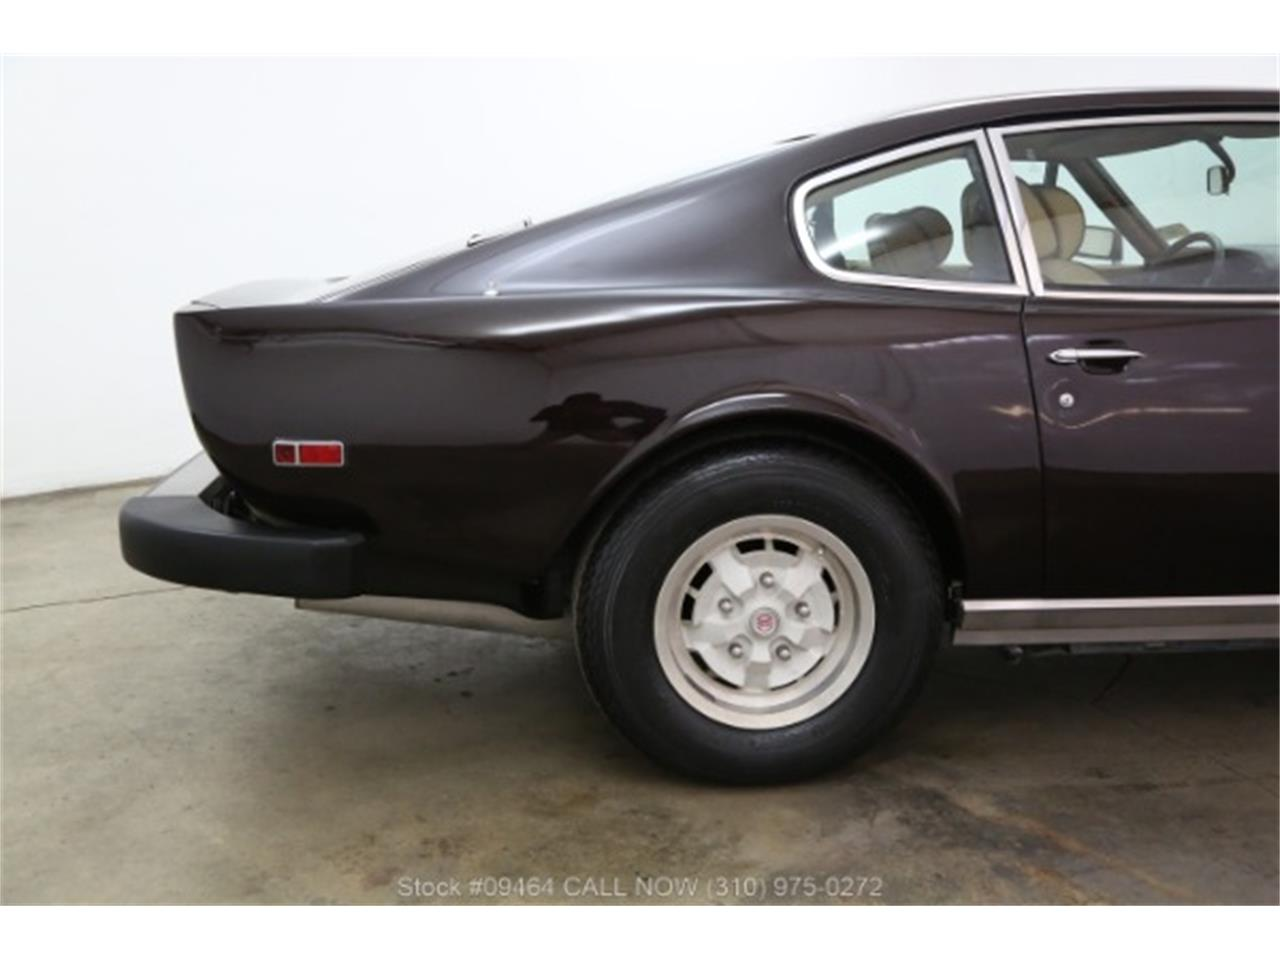 Large Picture of '82 Aston Martin V8 - $108,500.00 - MZ81